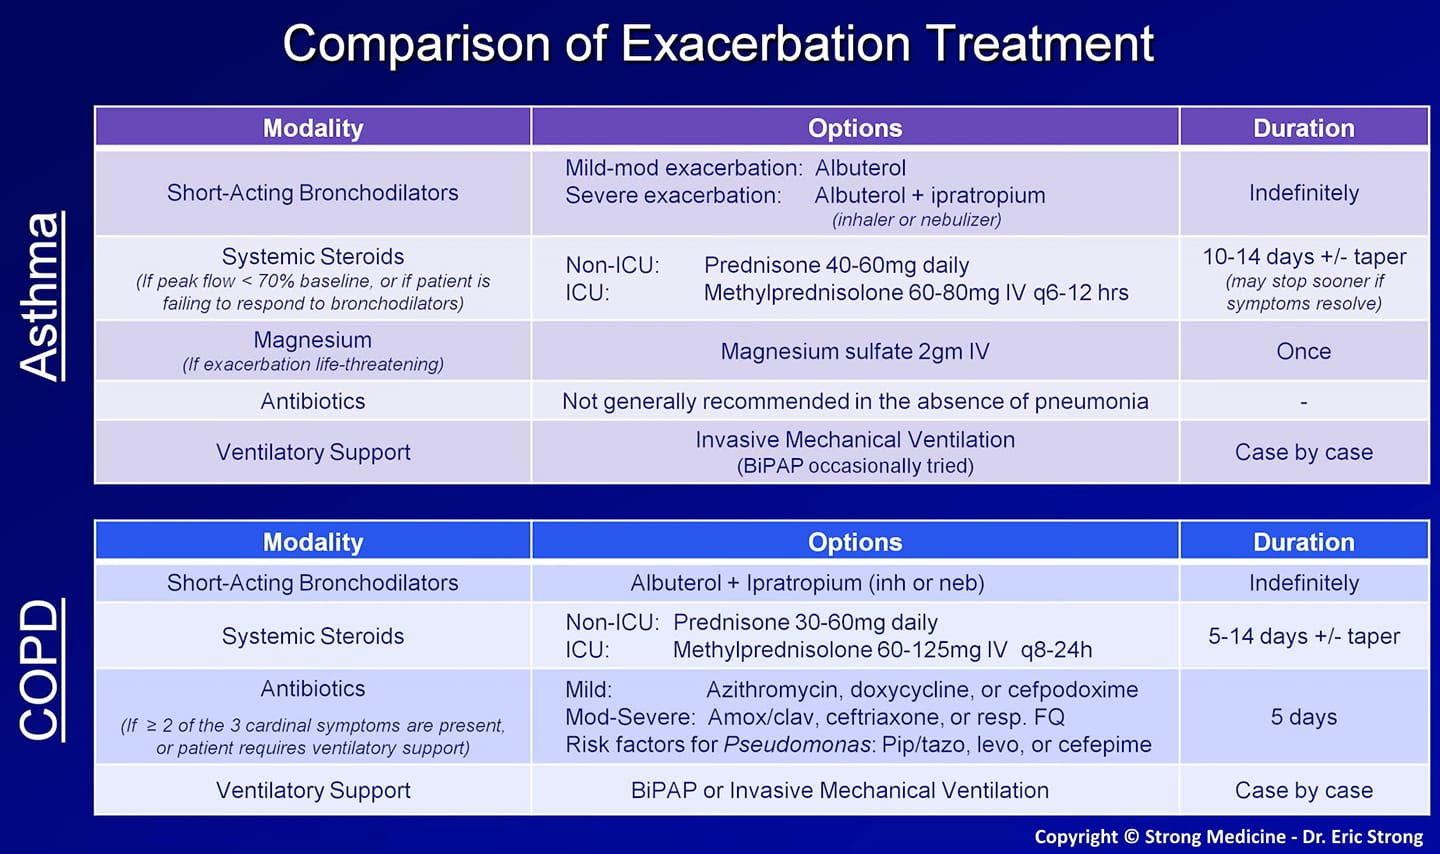 Exacerbation of COPD and astma treatment